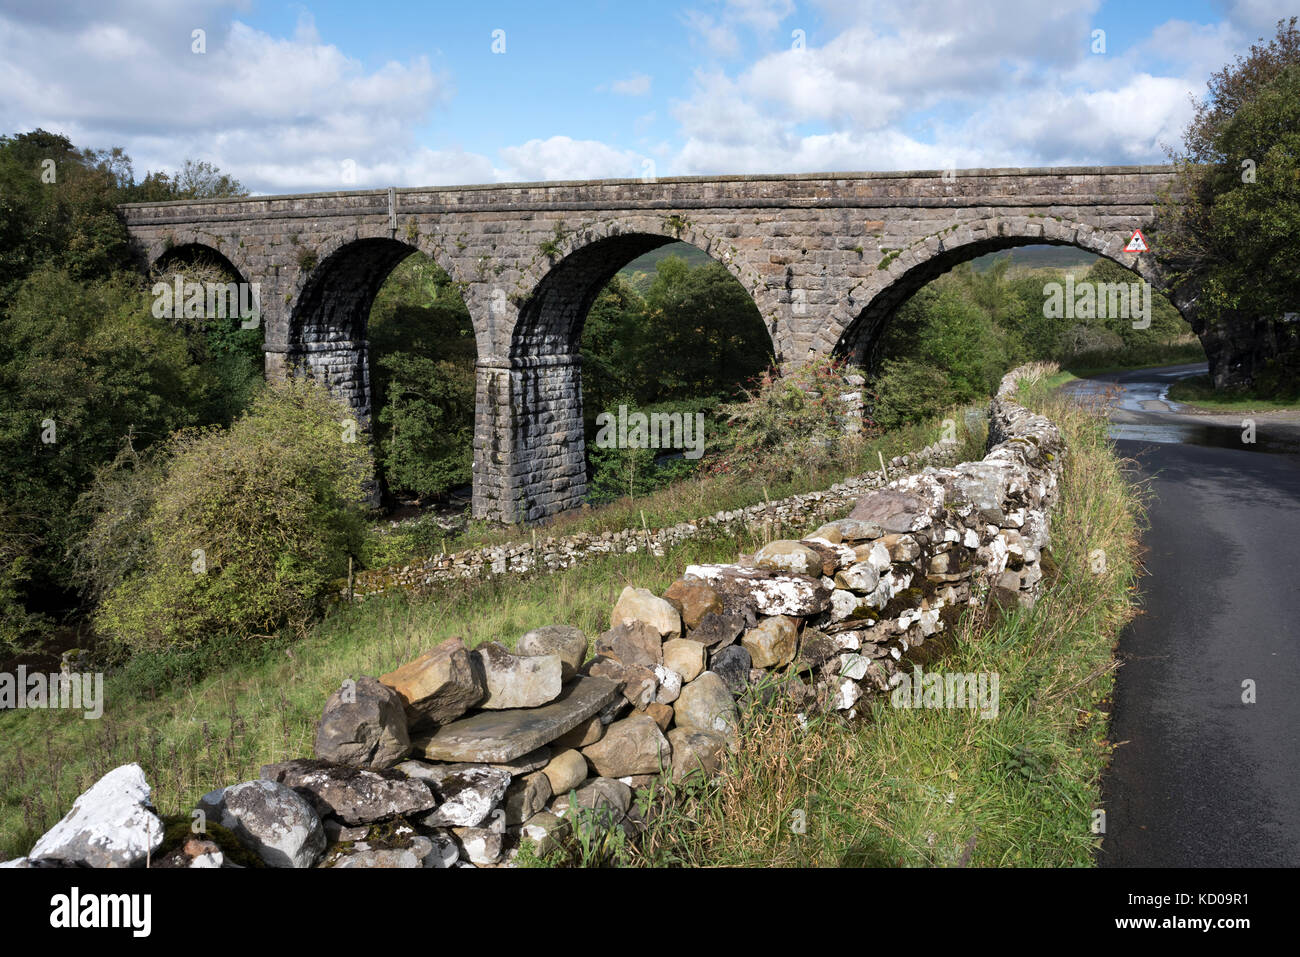 The redundant listed Appersett Viaduct on the former Wensleydale railway, near Hawes, North Yorkshire, UK - Stock Image